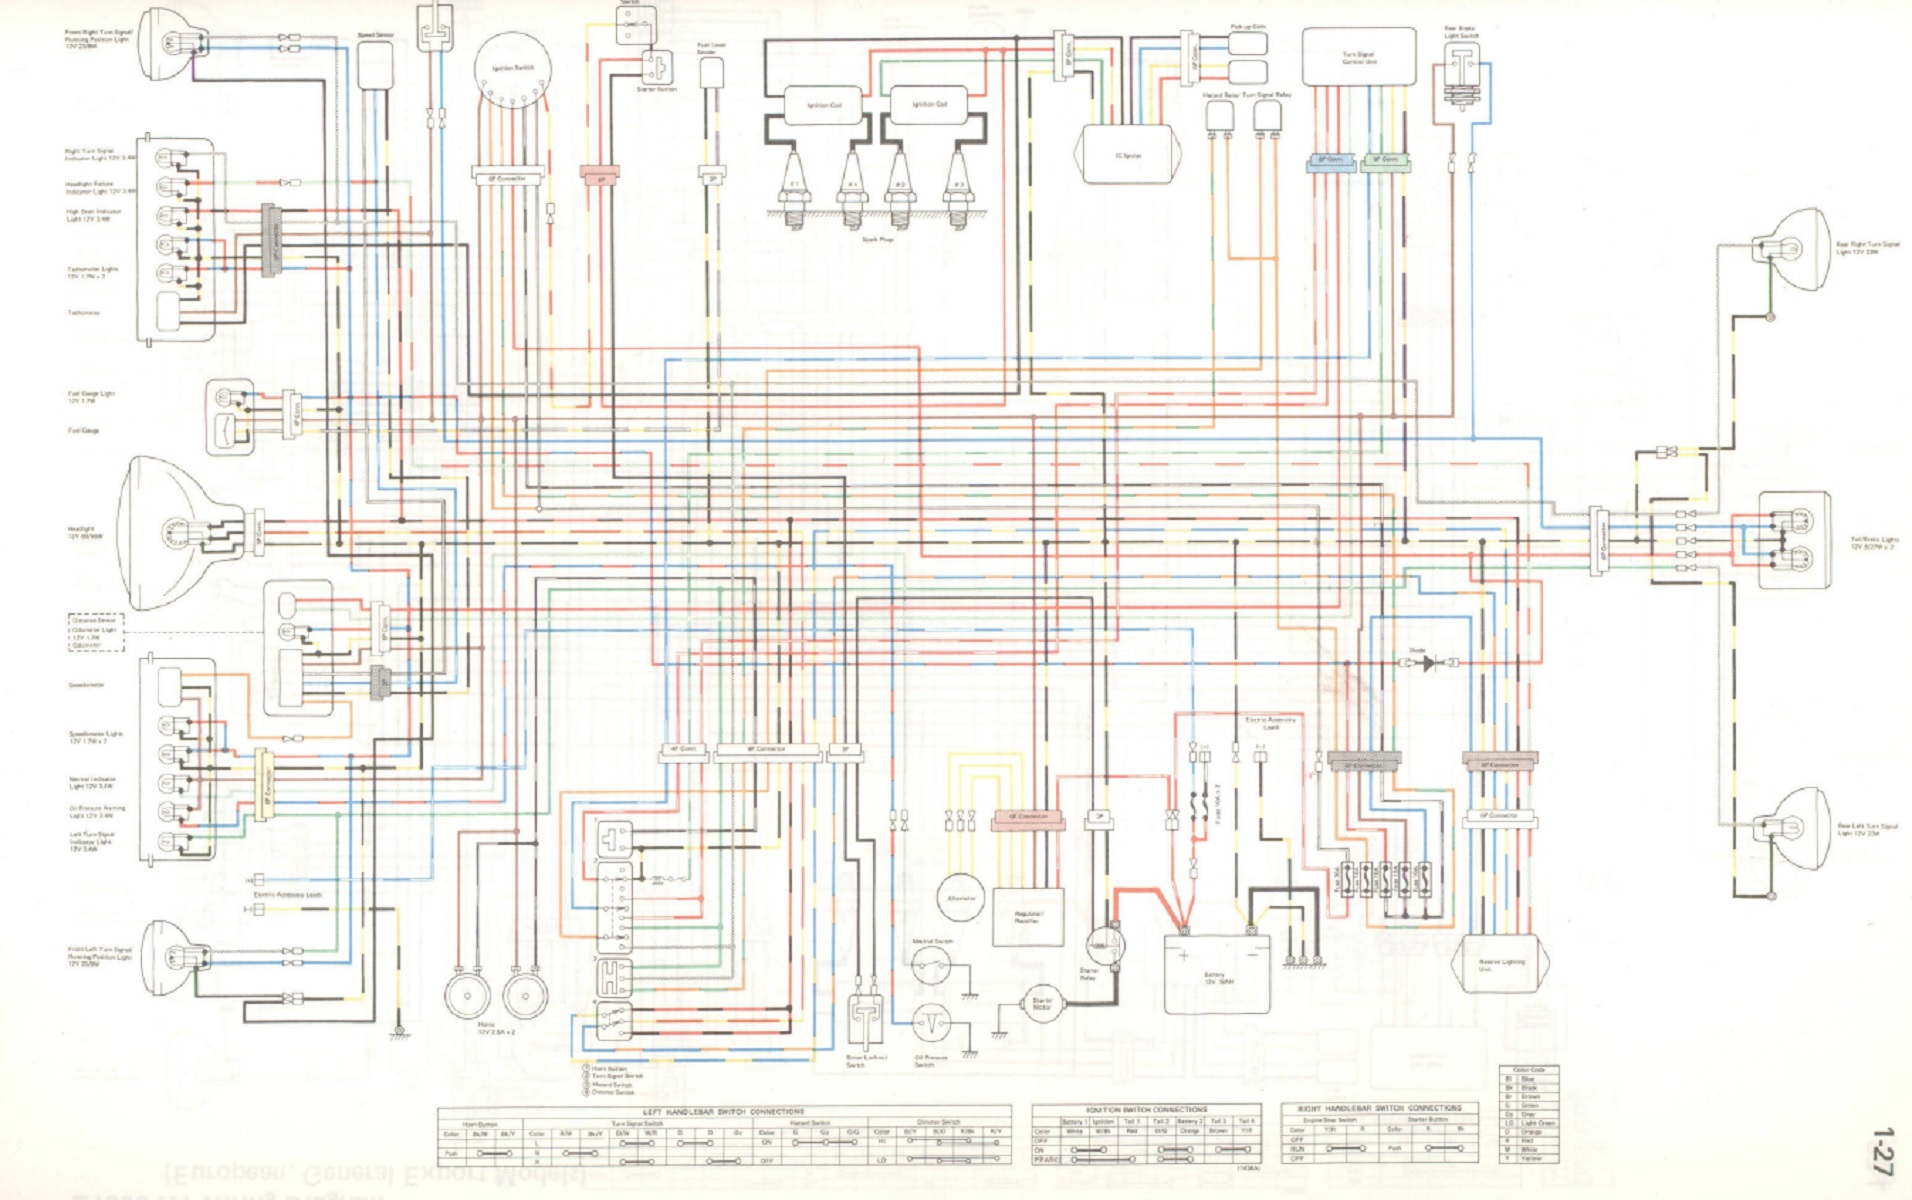 1981KZ1000 K1LTDwiringdiagram?resized665%2C4176ssld1 kawasaki bayou 250 wiring diagram efcaviation com kawasaki bayou wiring diagram at reclaimingppi.co